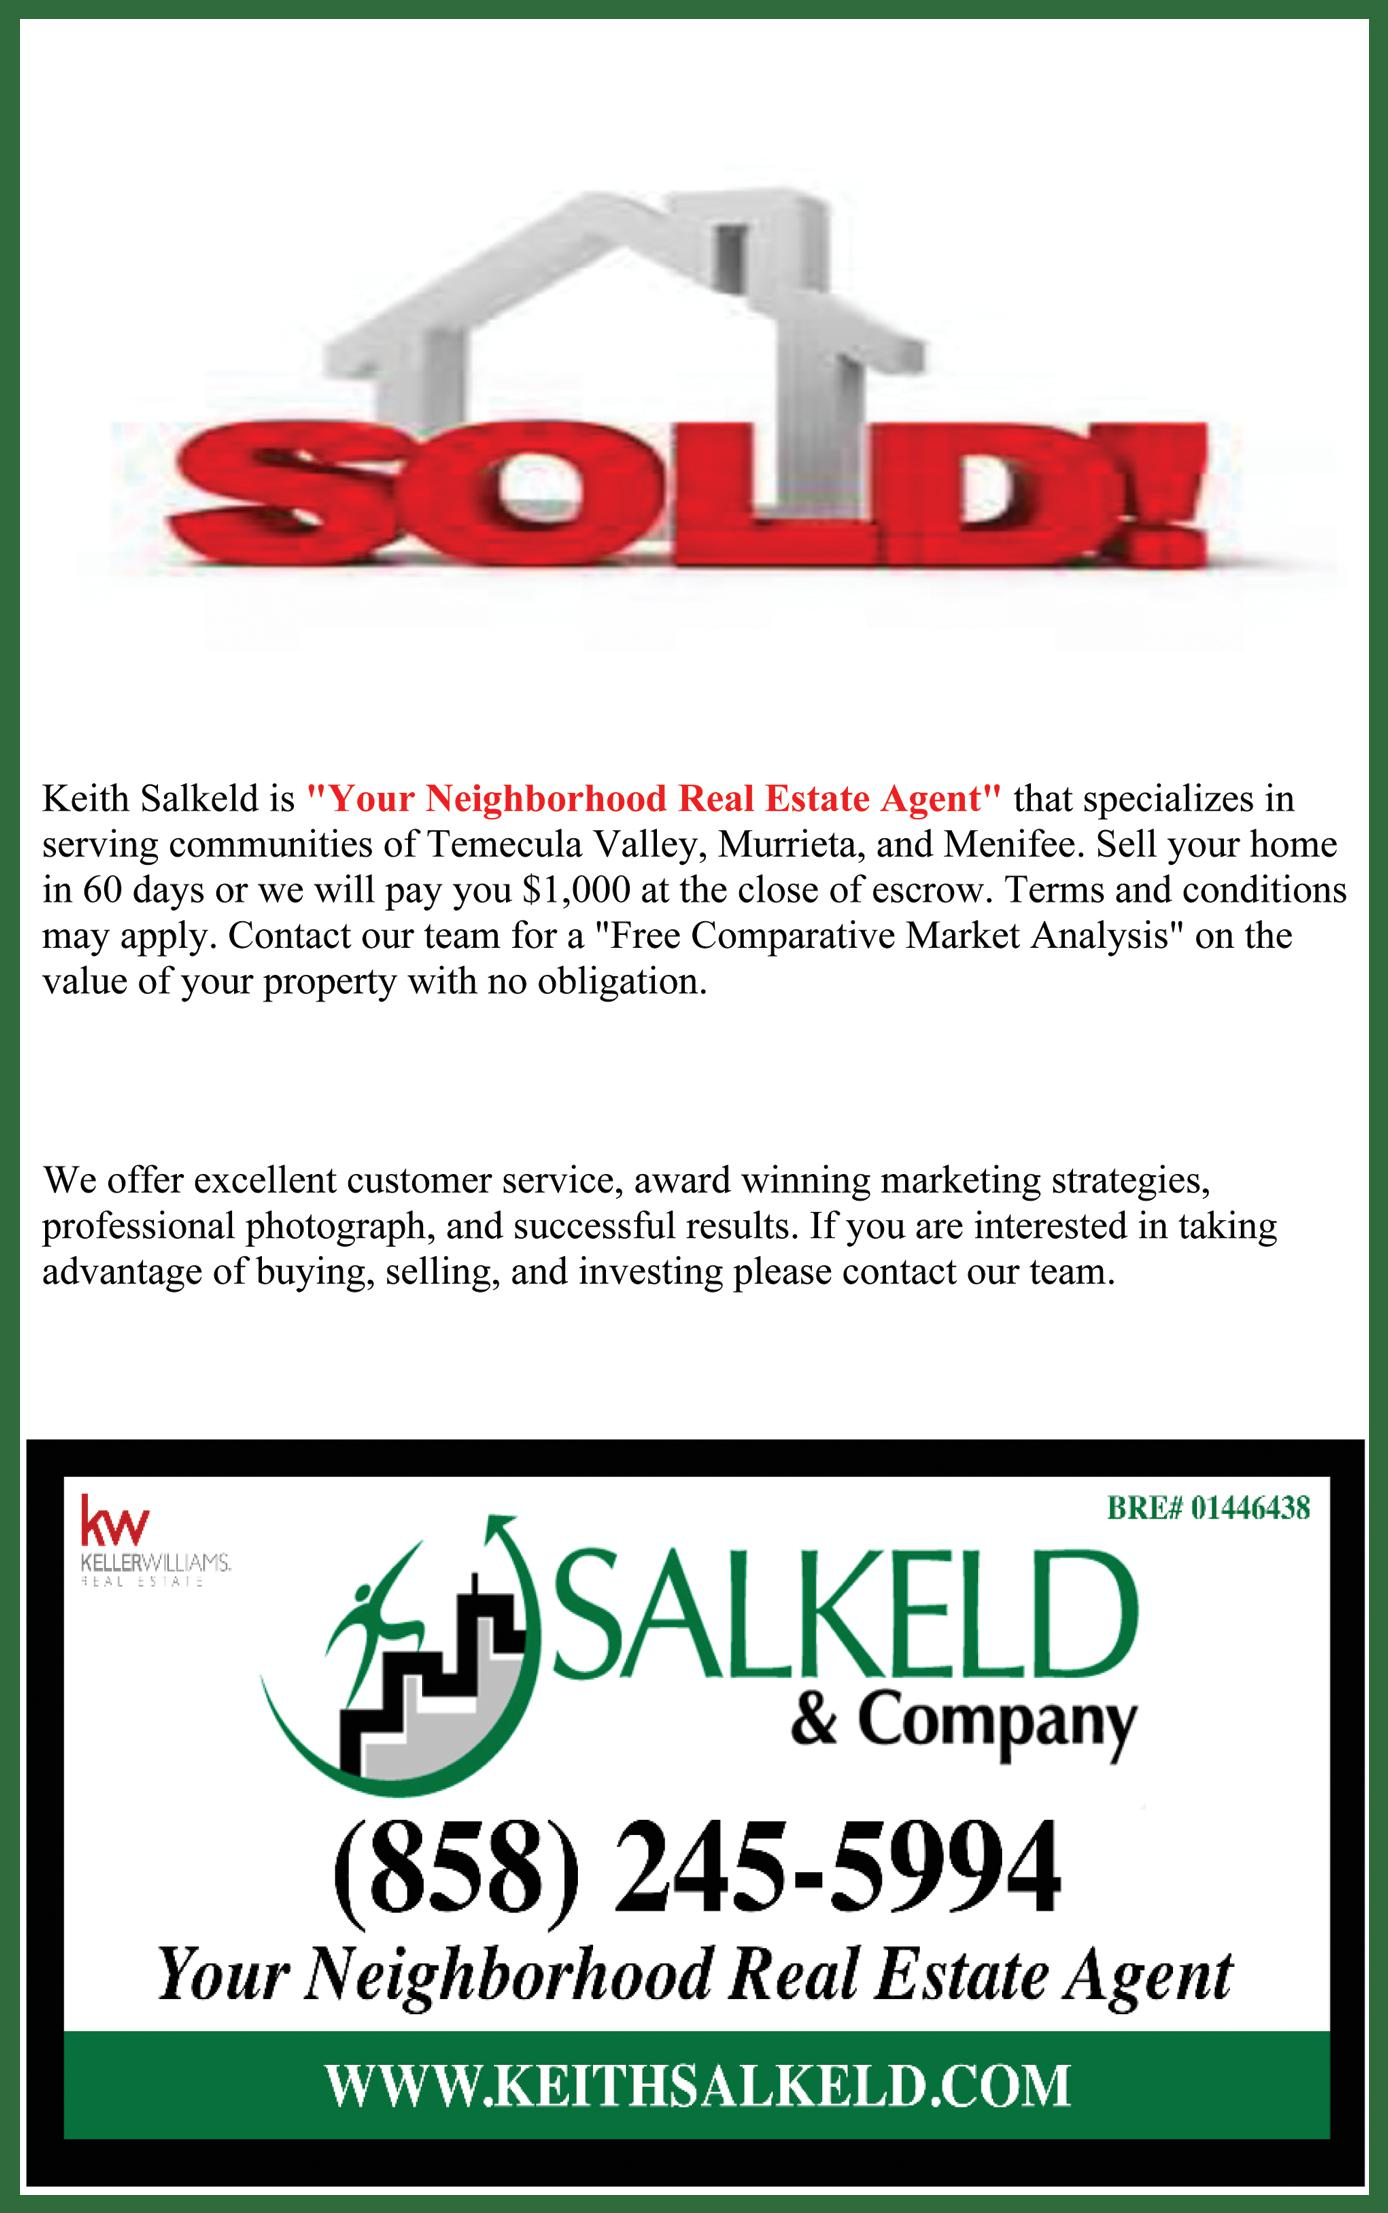 Salkeld & Company - Your Neighborhood Realtor